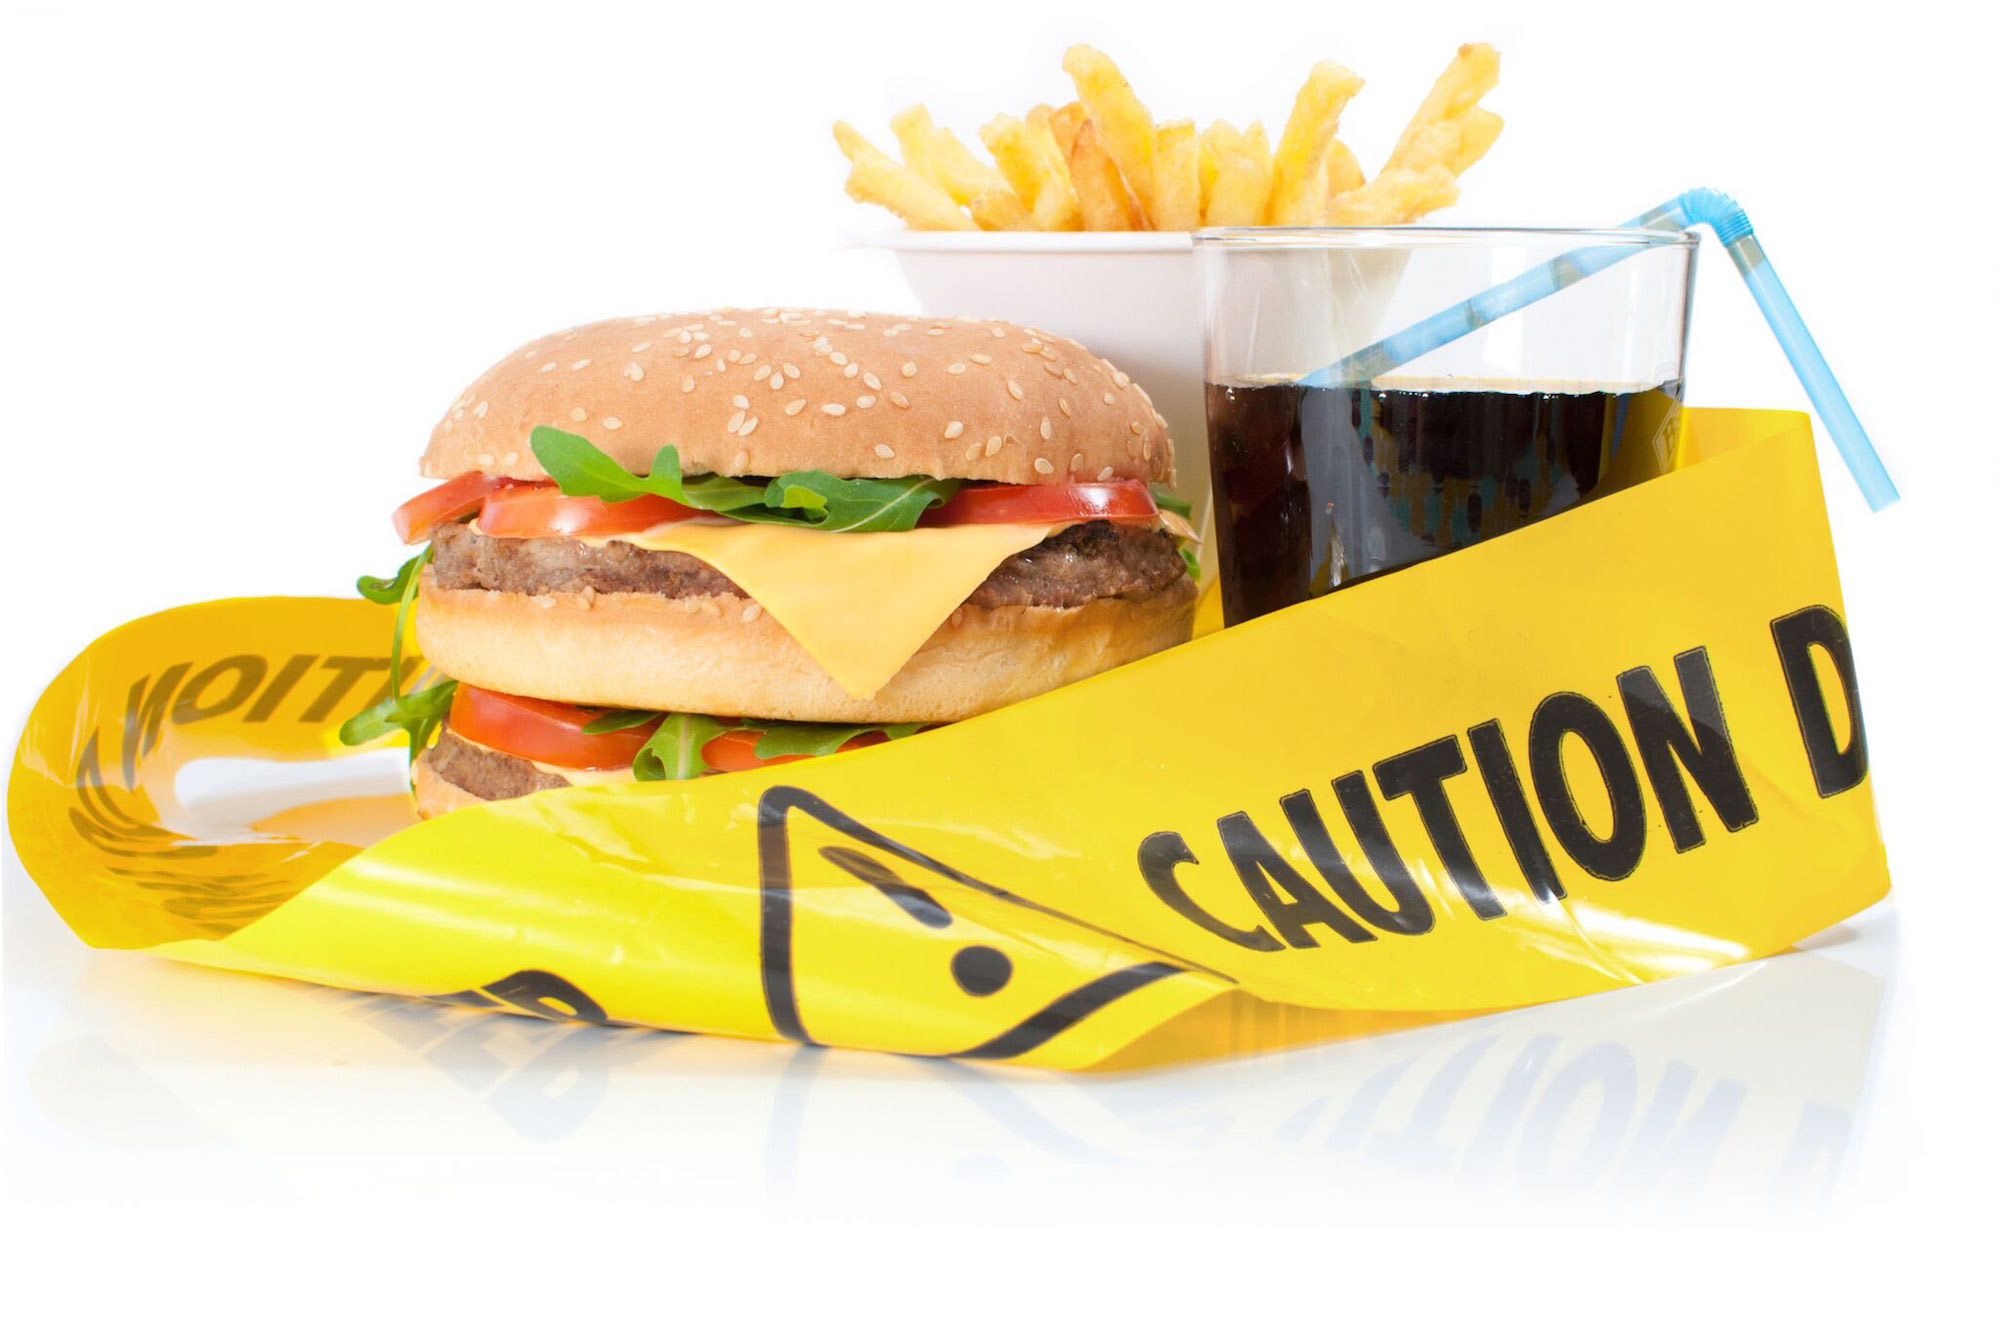 A new study shows that actions to demand improvements would be most welcomed in communities of color, where children are also exposed to greater amounts of unhealthy food marketing. (Shutterstock Photo)